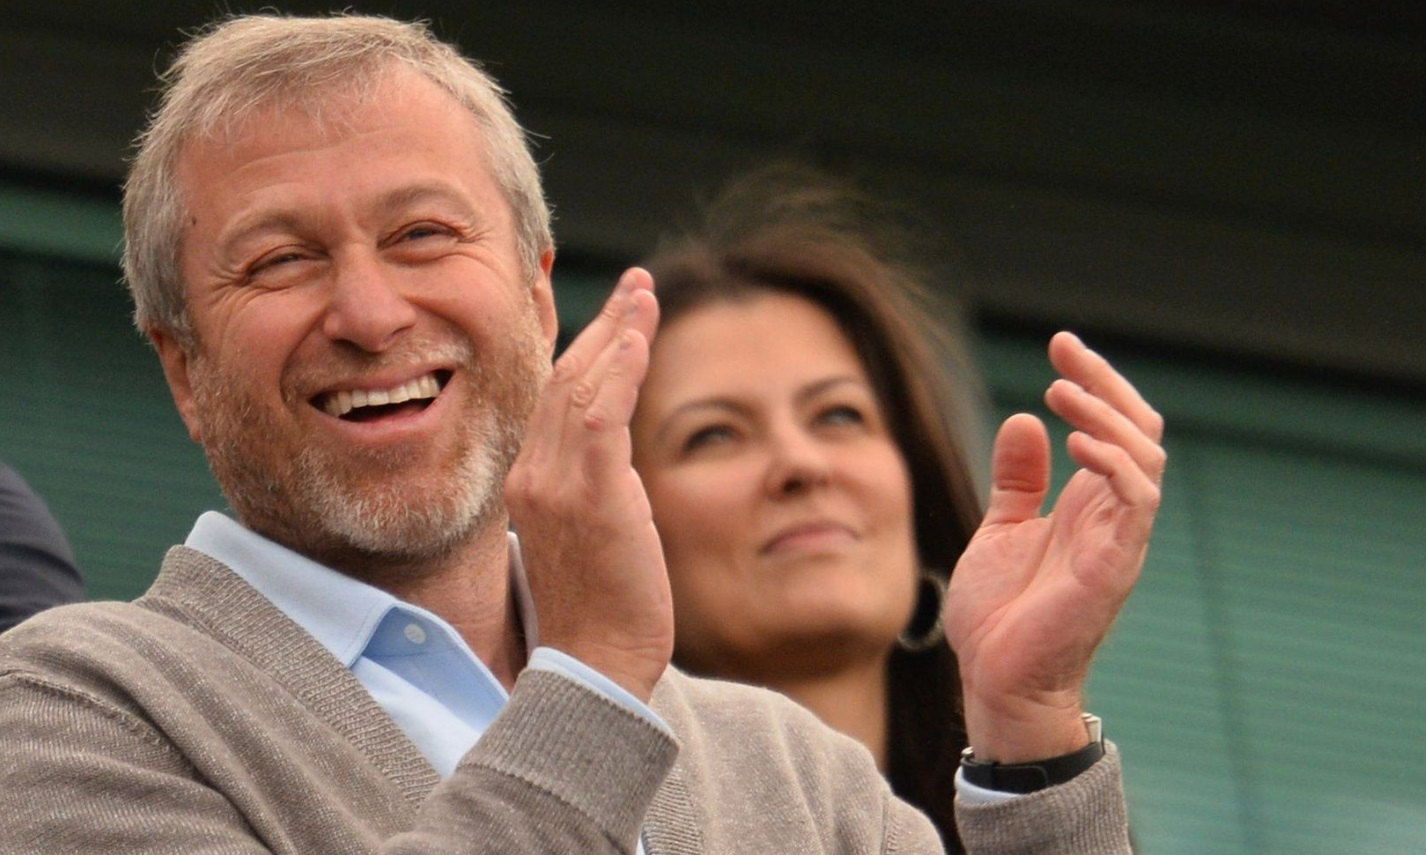 Roman Abramovich net worth 2020